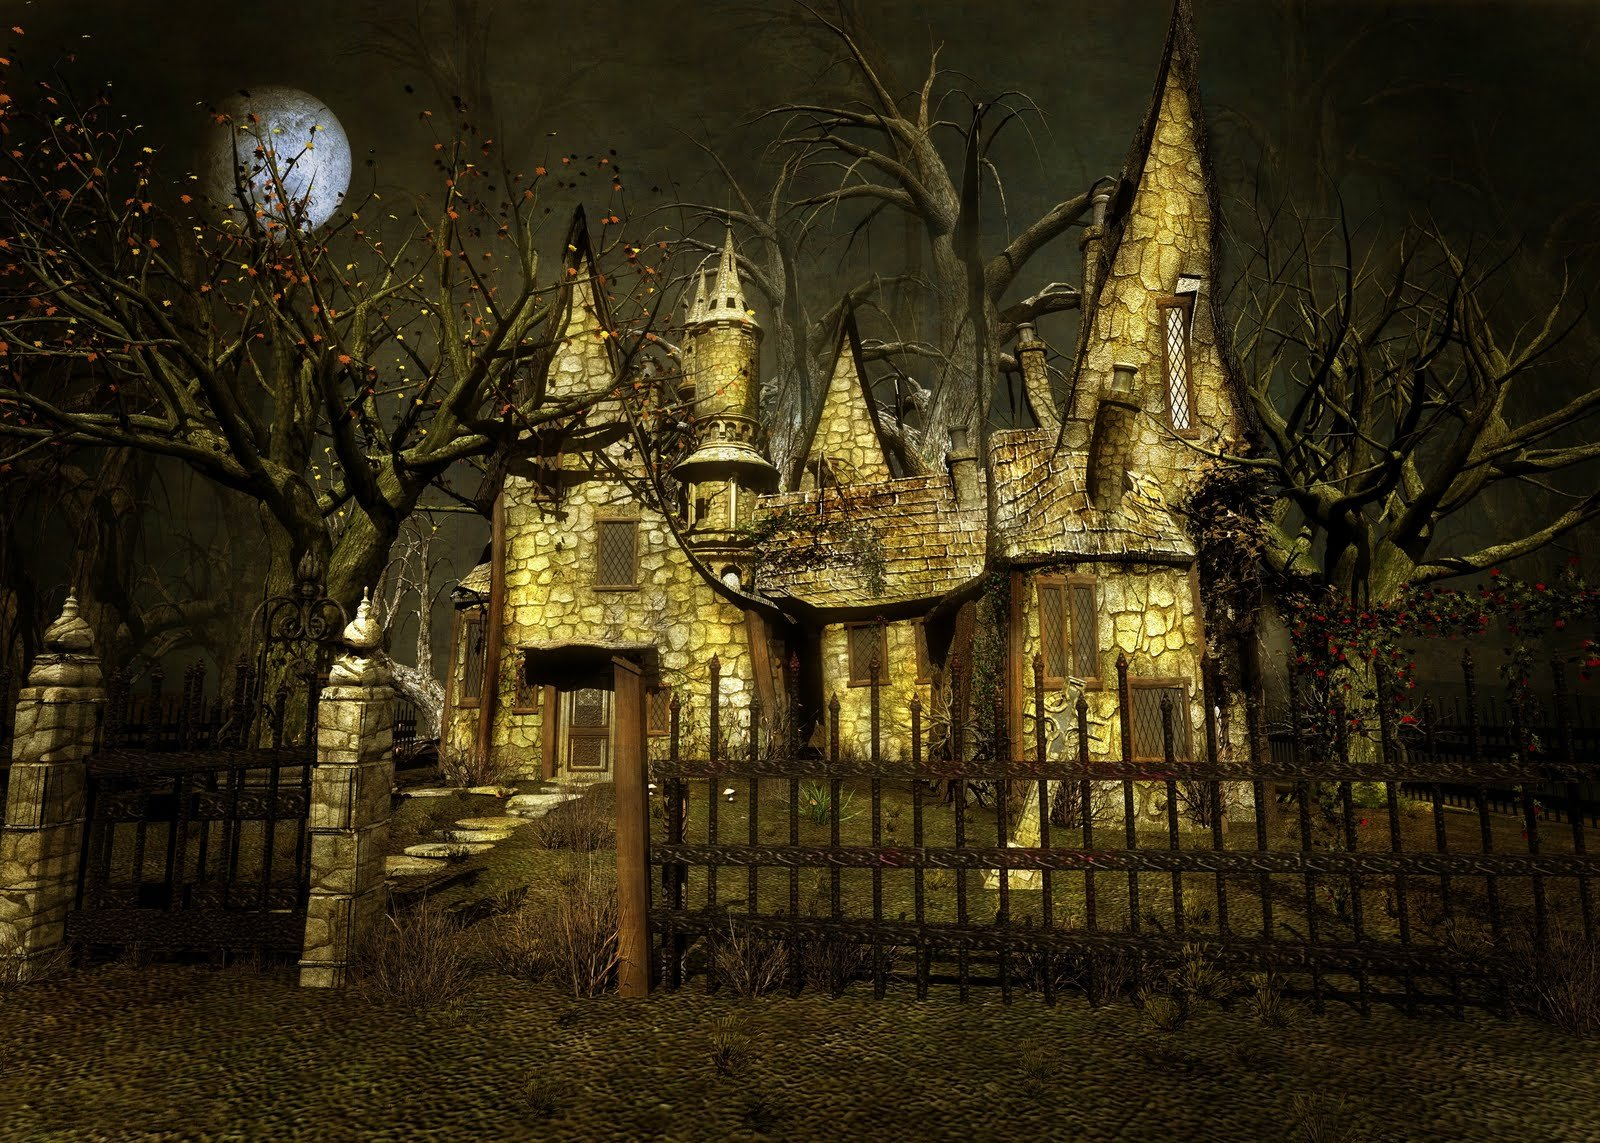 Artistic - House  Artistic Fantasy Fence Unusual Spooky Wallpaper